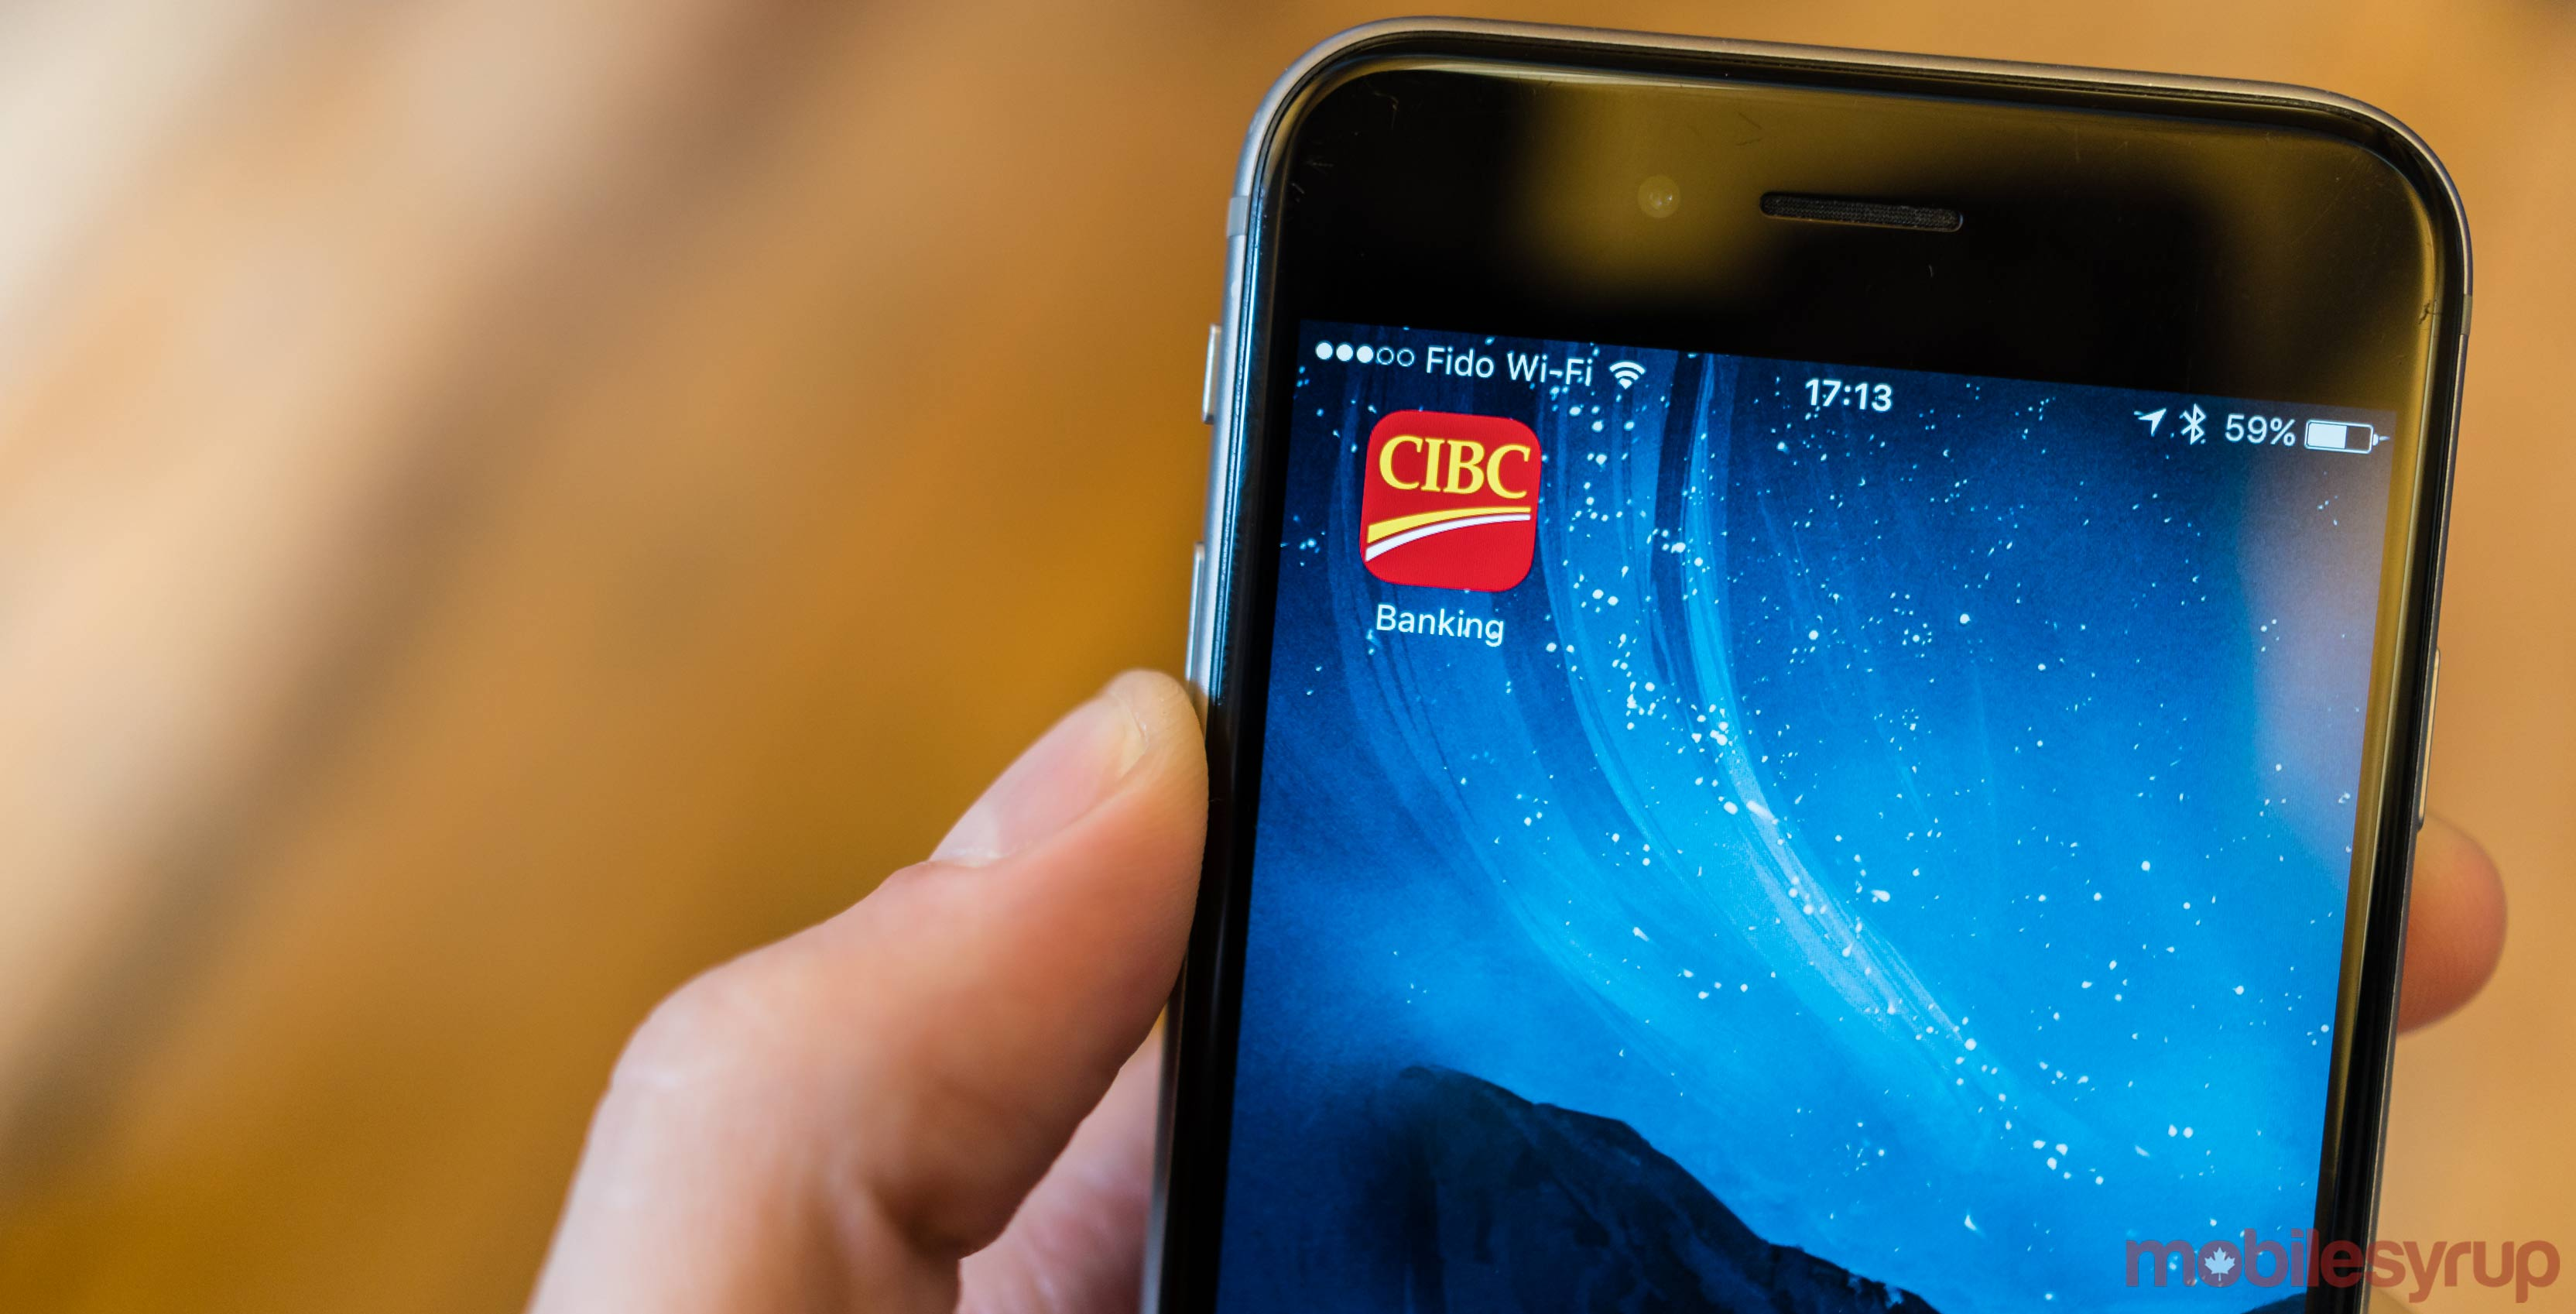 CIBC Mobile Banking app icon on iOS